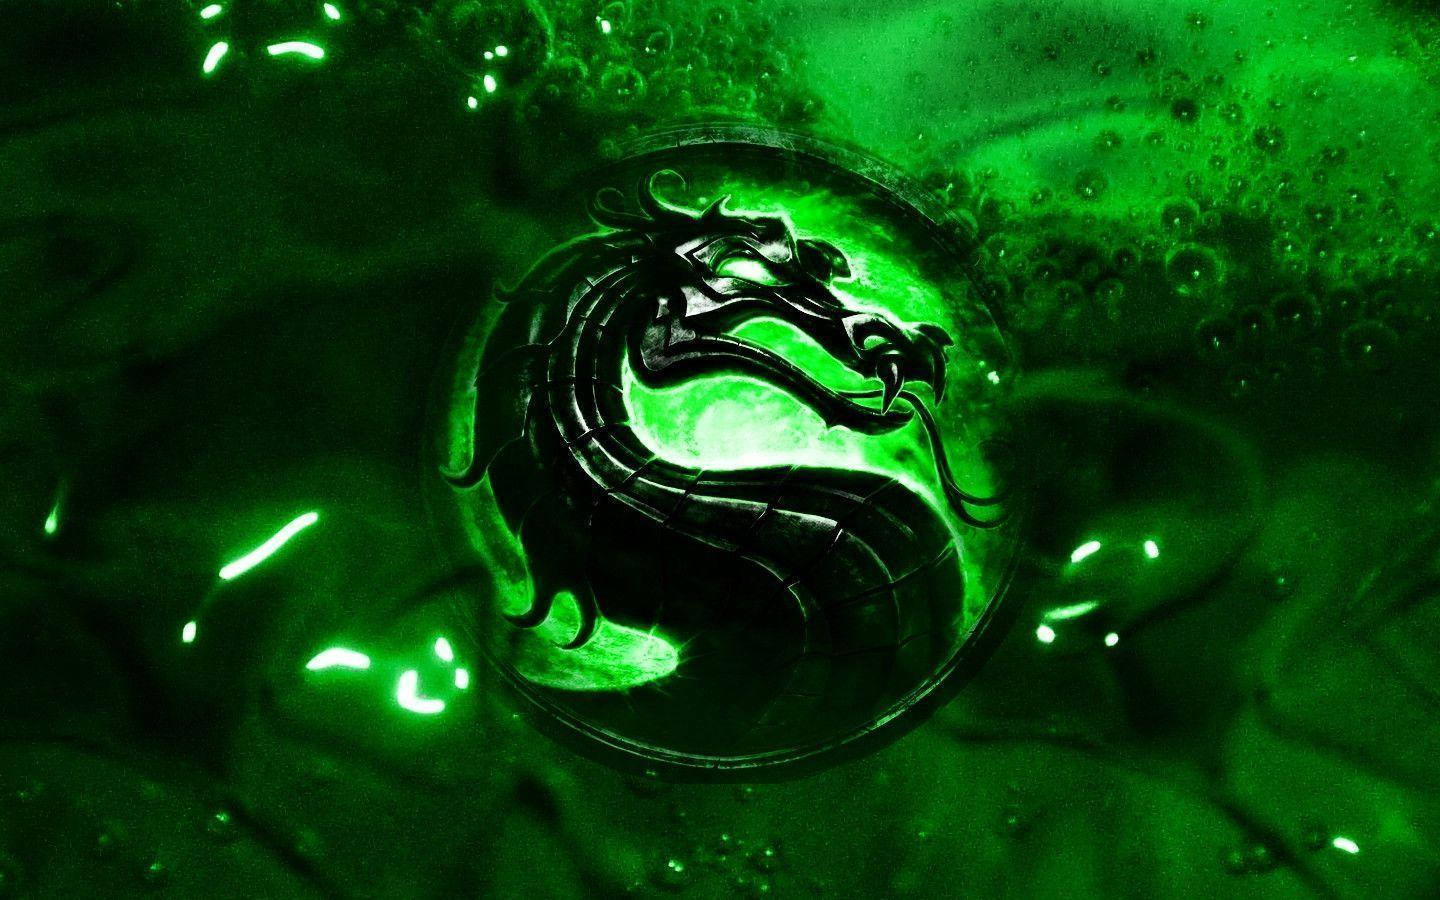 green dragon wallpapers wallpaper cave rh wallpapercave com green dragon phone wallpaper green dragon 4k wallpaper